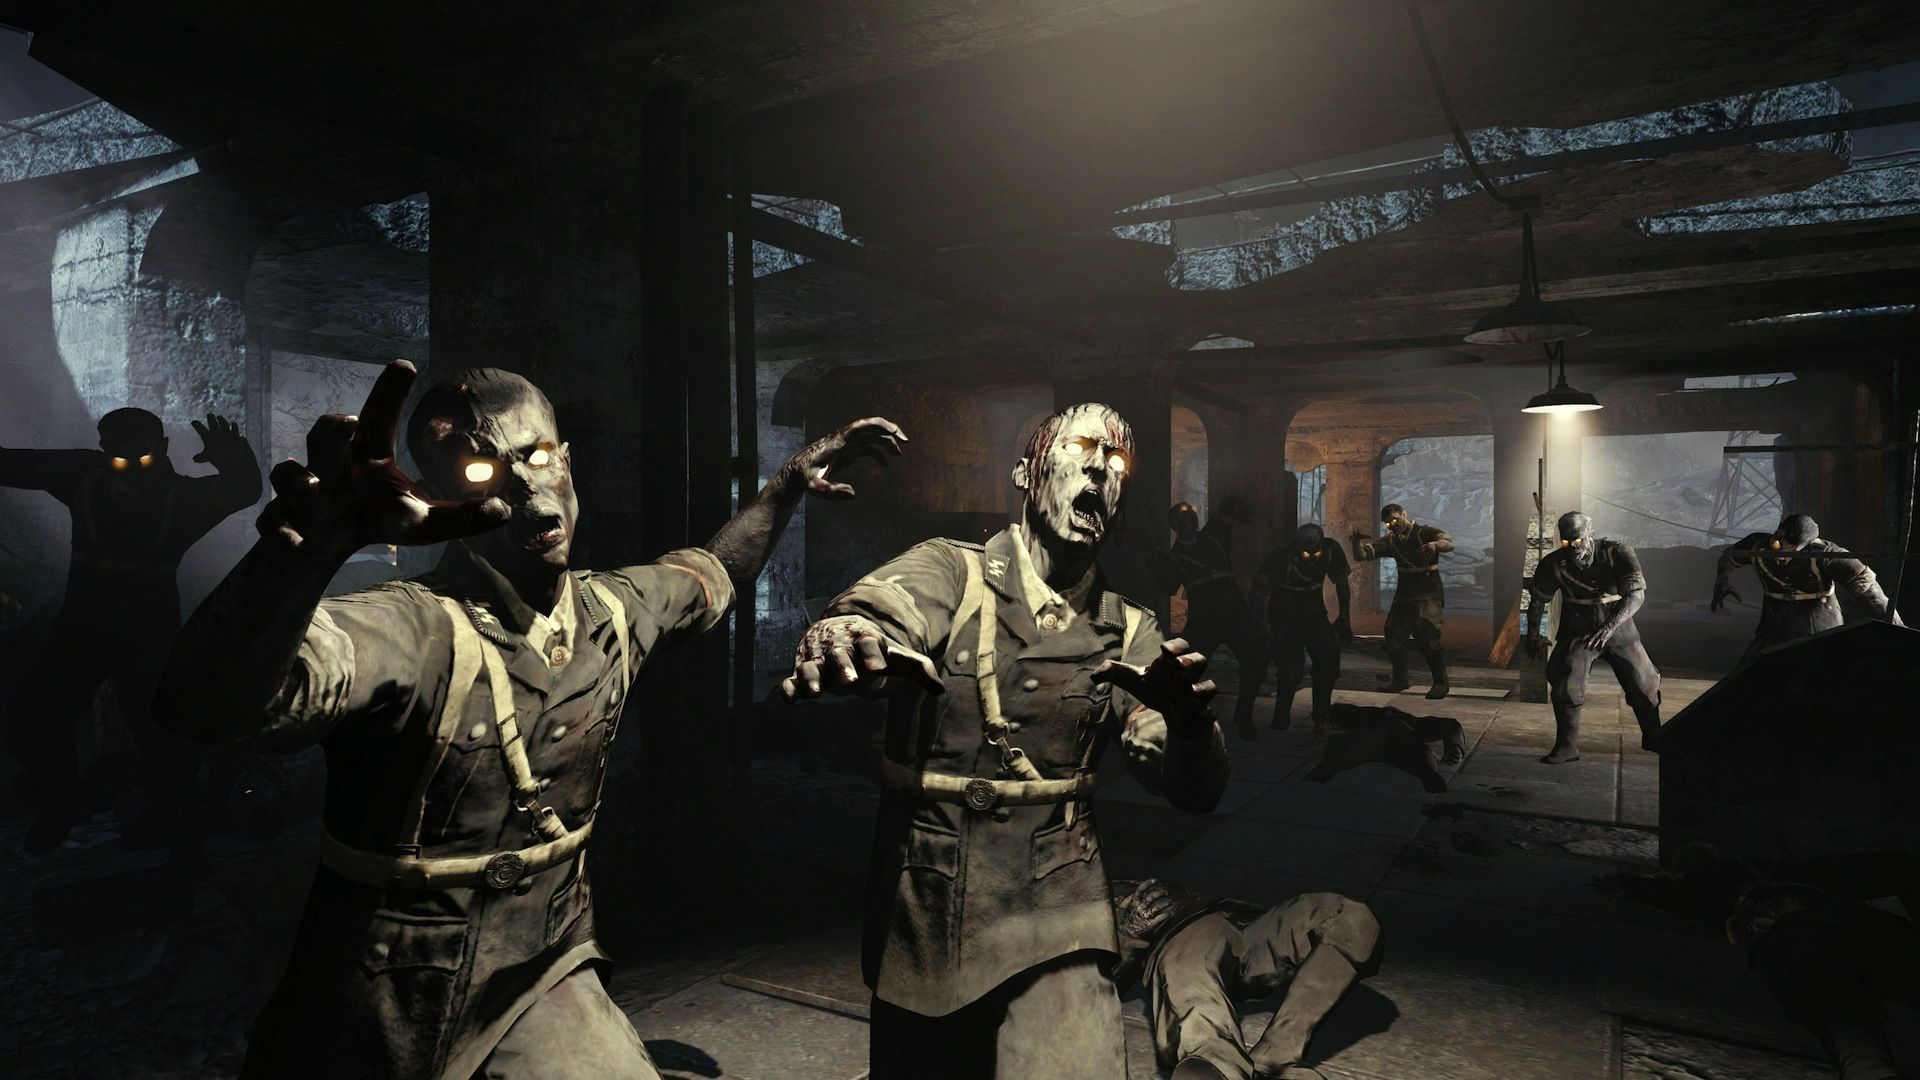 ❤️Call of Duty Black Ops Zombies! Me basically staying on